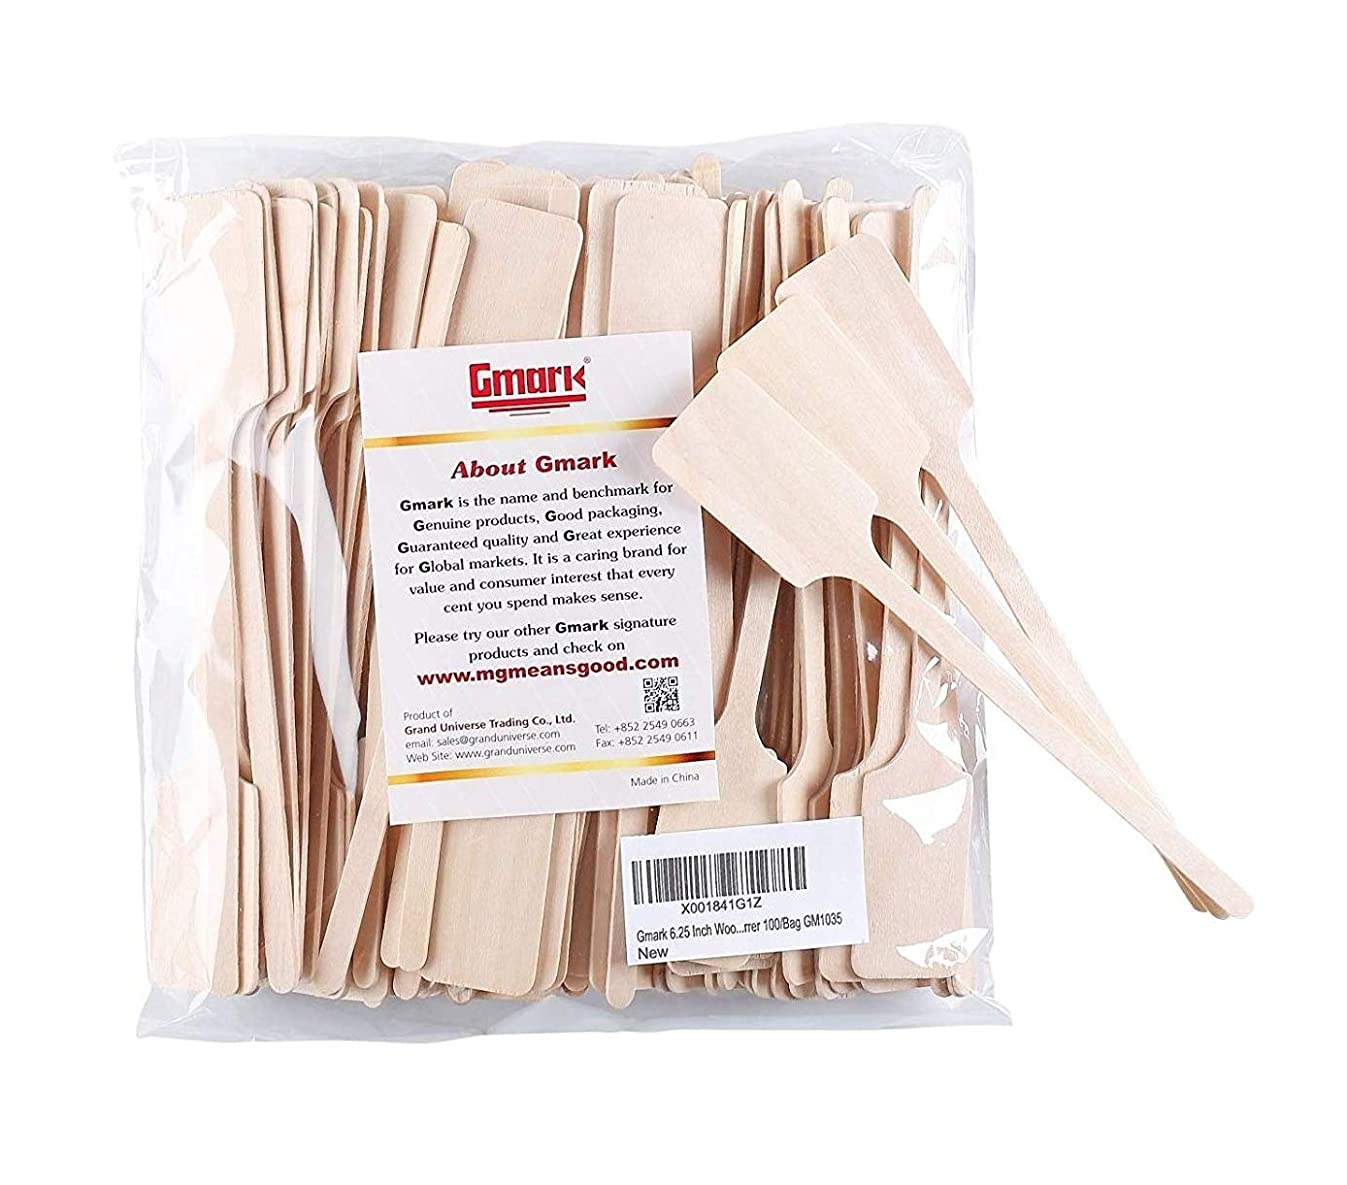 Gmark Green Product 6.25 Inch Wood Kayak Paddle Shape Sticks, Wood Stirrer for Honey, Eco-Friendly 100/Bag GM1035